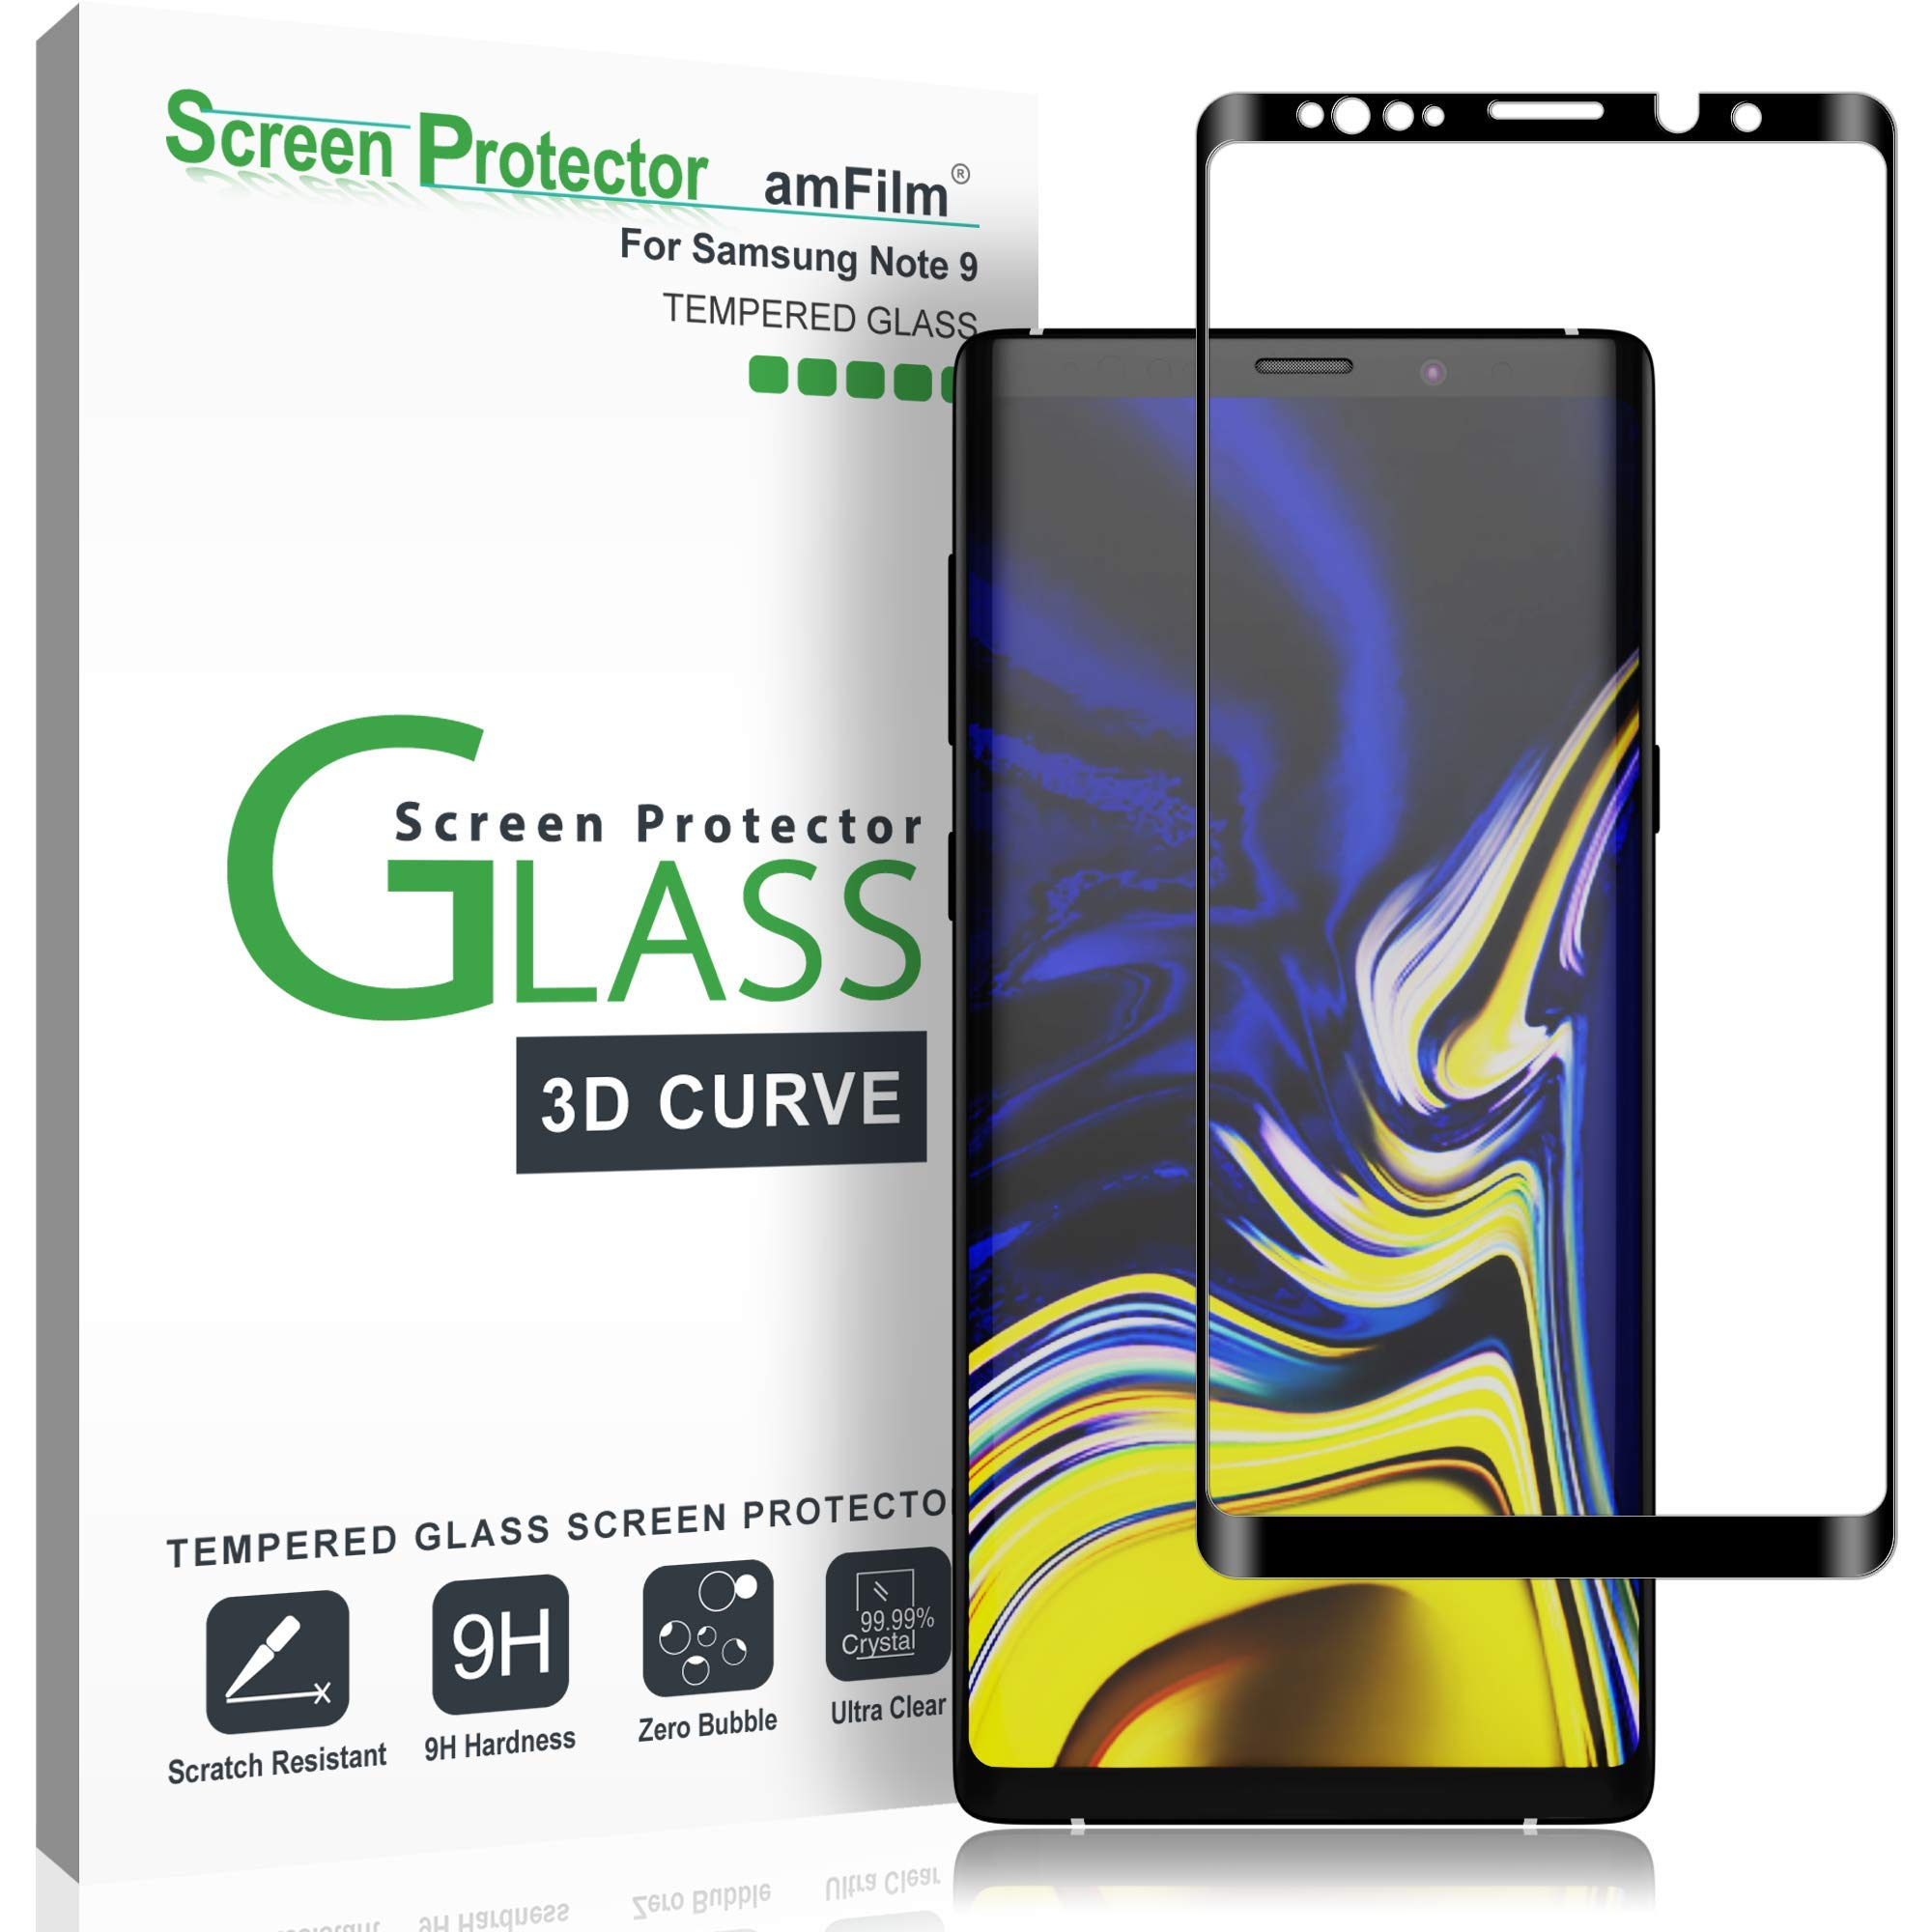 amFilm Glass Screen Protector for Samsung Galaxy Note 9, Full Screen Coverage Screen Protector, 3D Curved Tempered Glass, Dot Matrix with Easy Installation Tray (Black) by amFilm